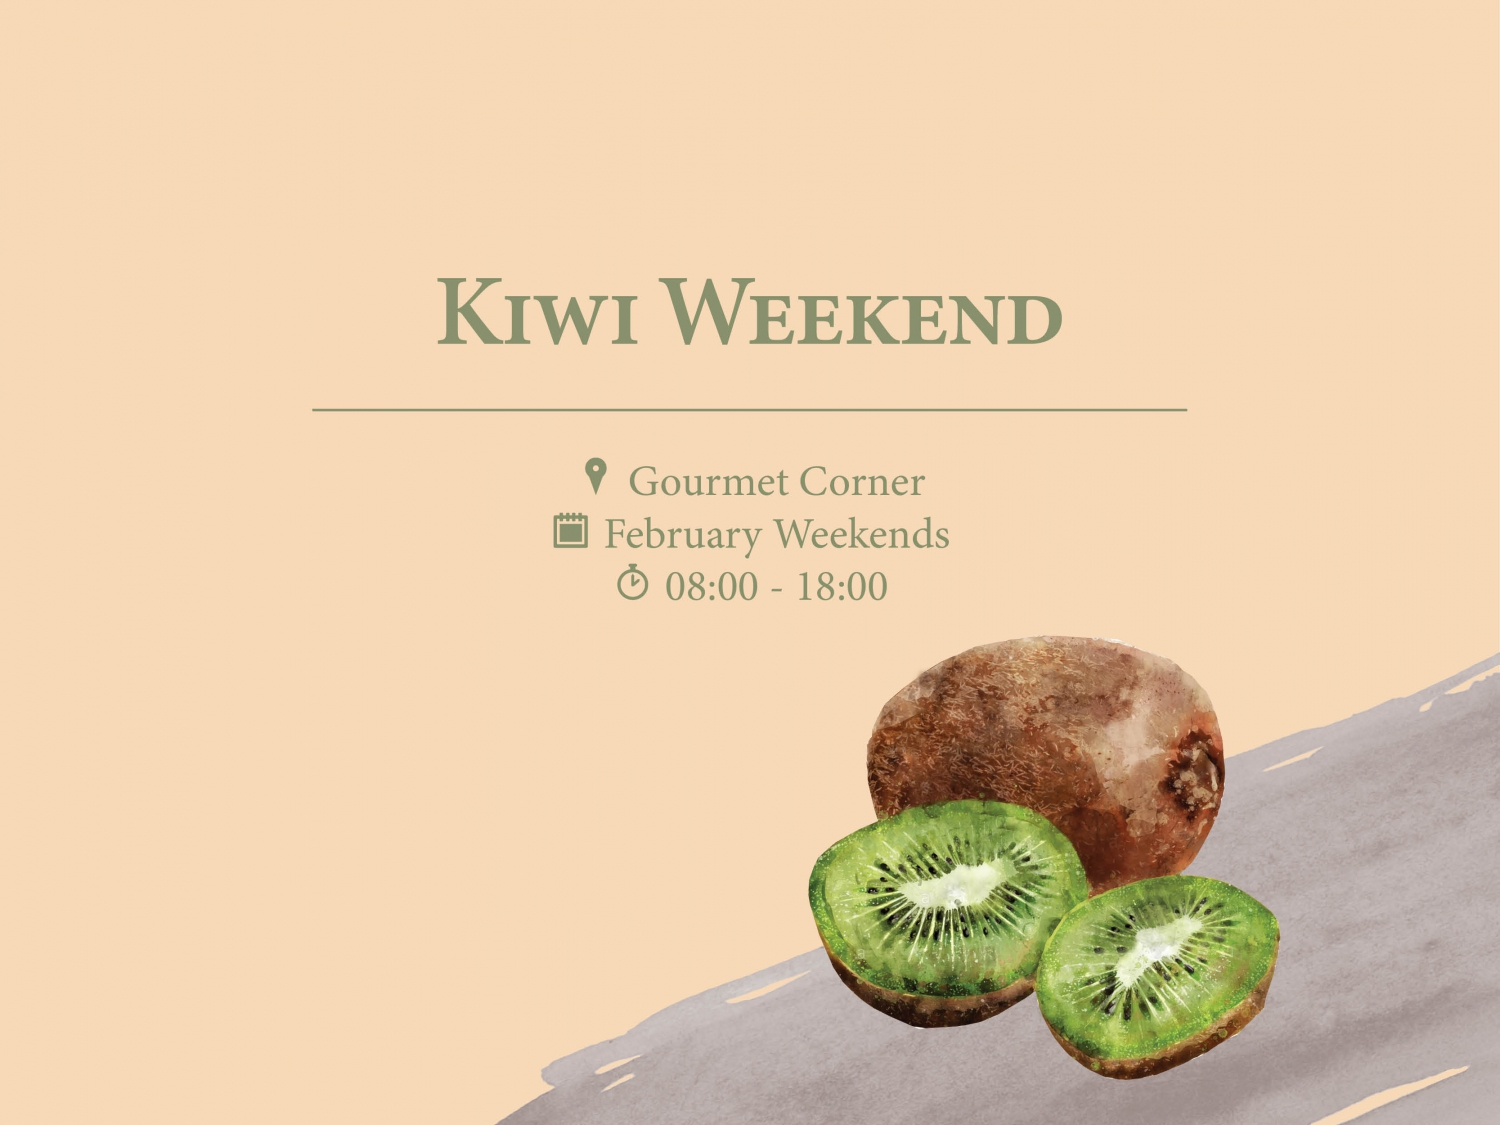 Kiwi Weekend at Gourmet Corner